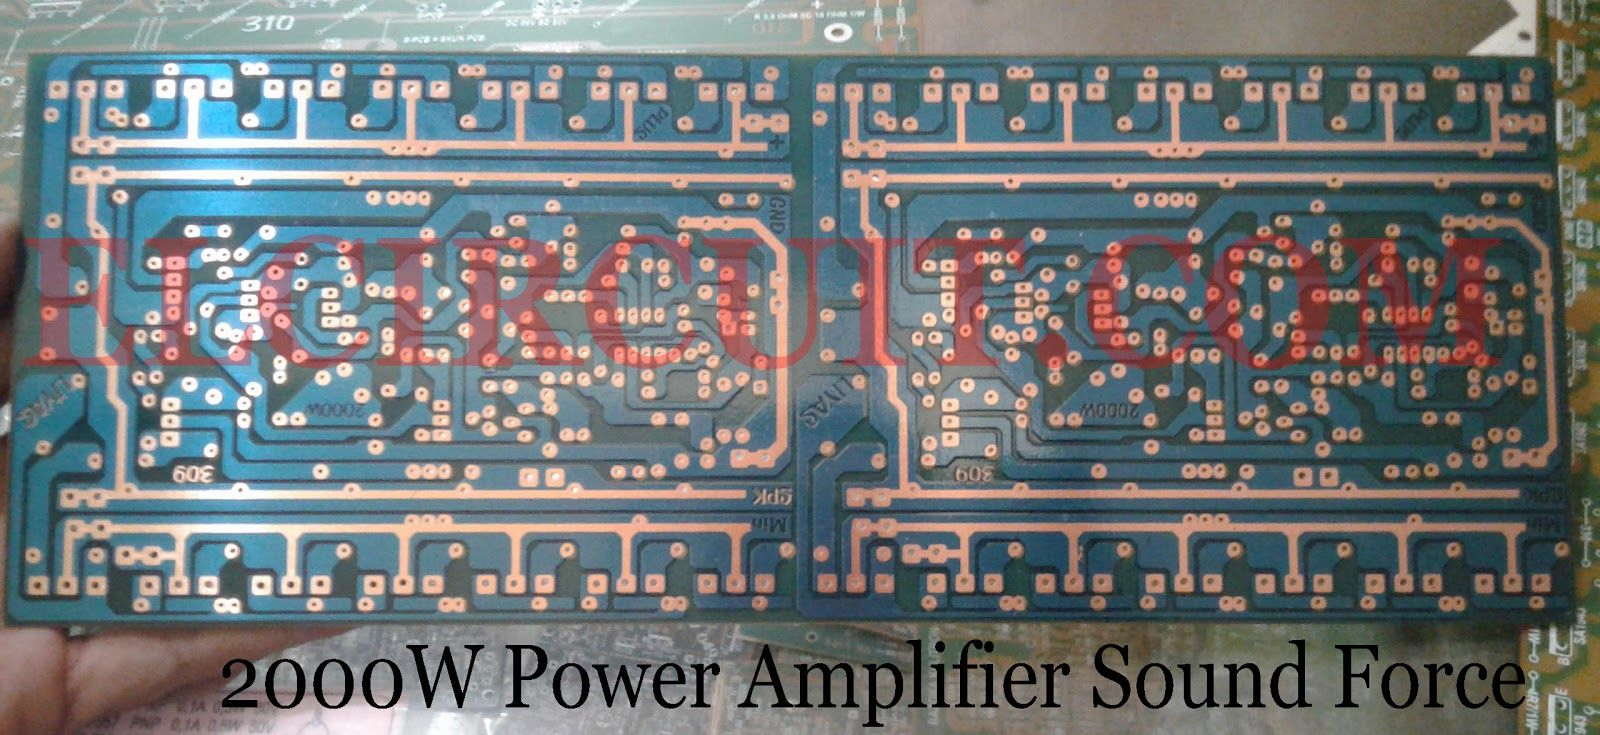 hight resolution of 2000w power amplifier circuit complete pcb layout in 2019 2000w audio amplifier circuit diagram pdf 2000w audio amplifier circuit diagrams